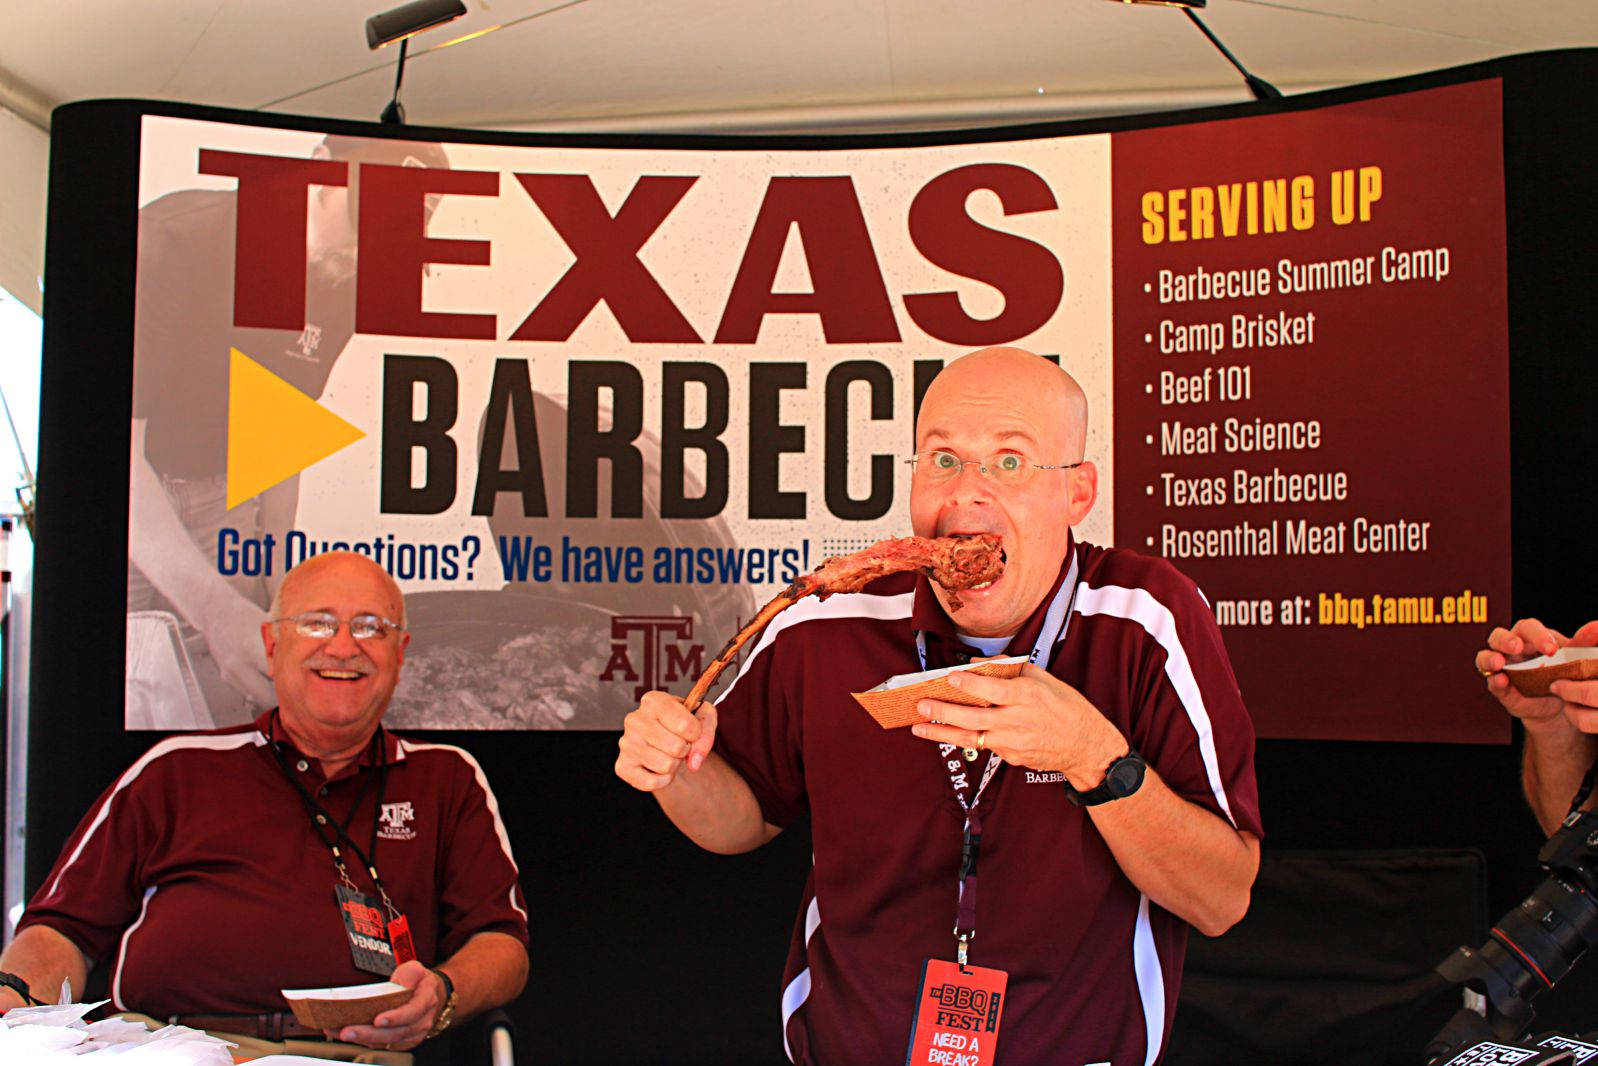 Jeff Savell and the gang from A&M meat science department were on hand at Texas Monthly BBQ Fest 2016